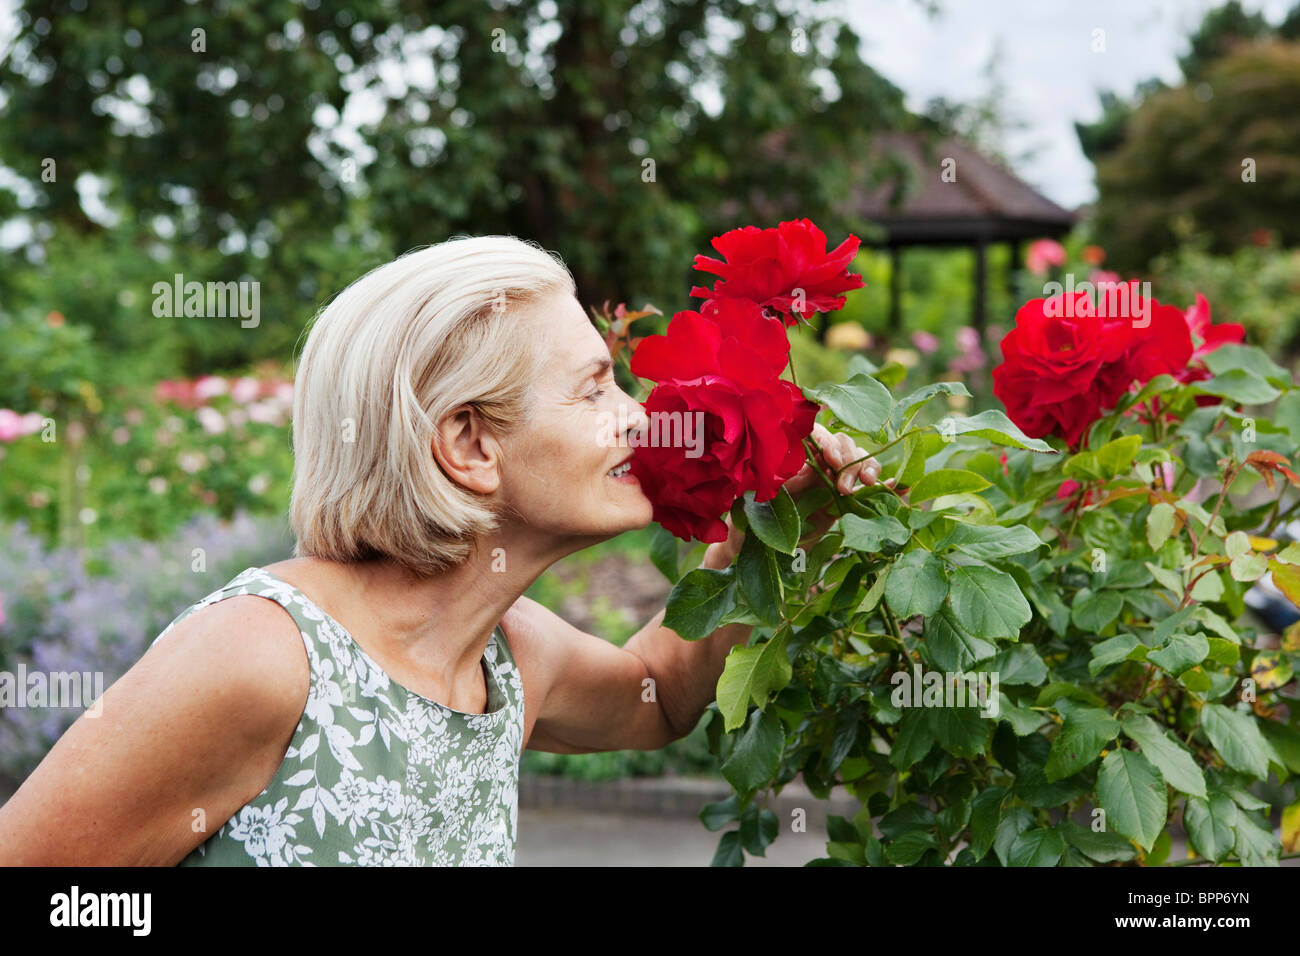 Woman smells red rose in rose garden - Stock Image